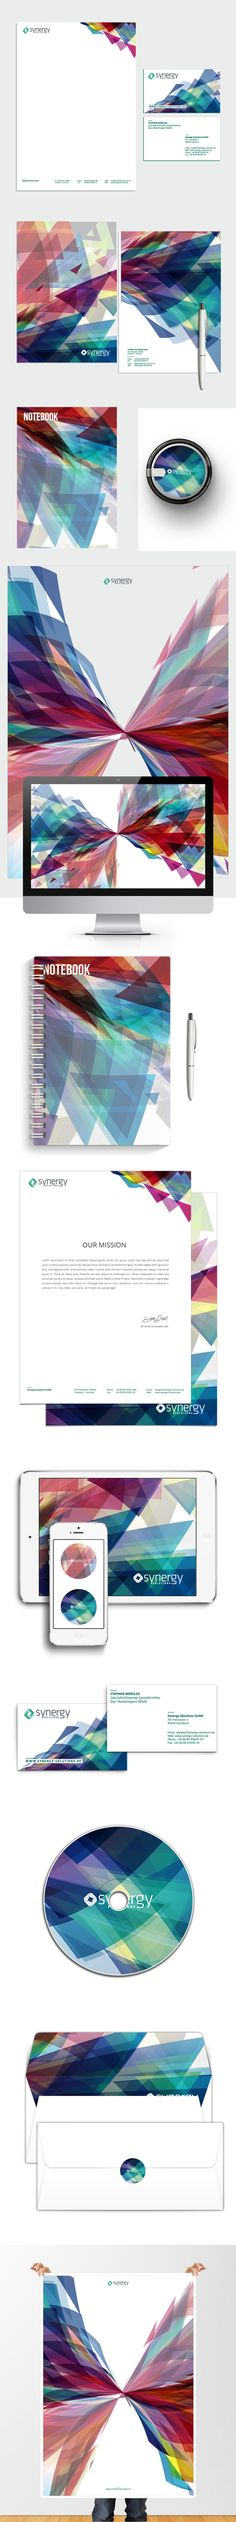 pinterest.com/fra411 #visual #identity - Synergy Branding by Firman Suci Ananda , via Behance